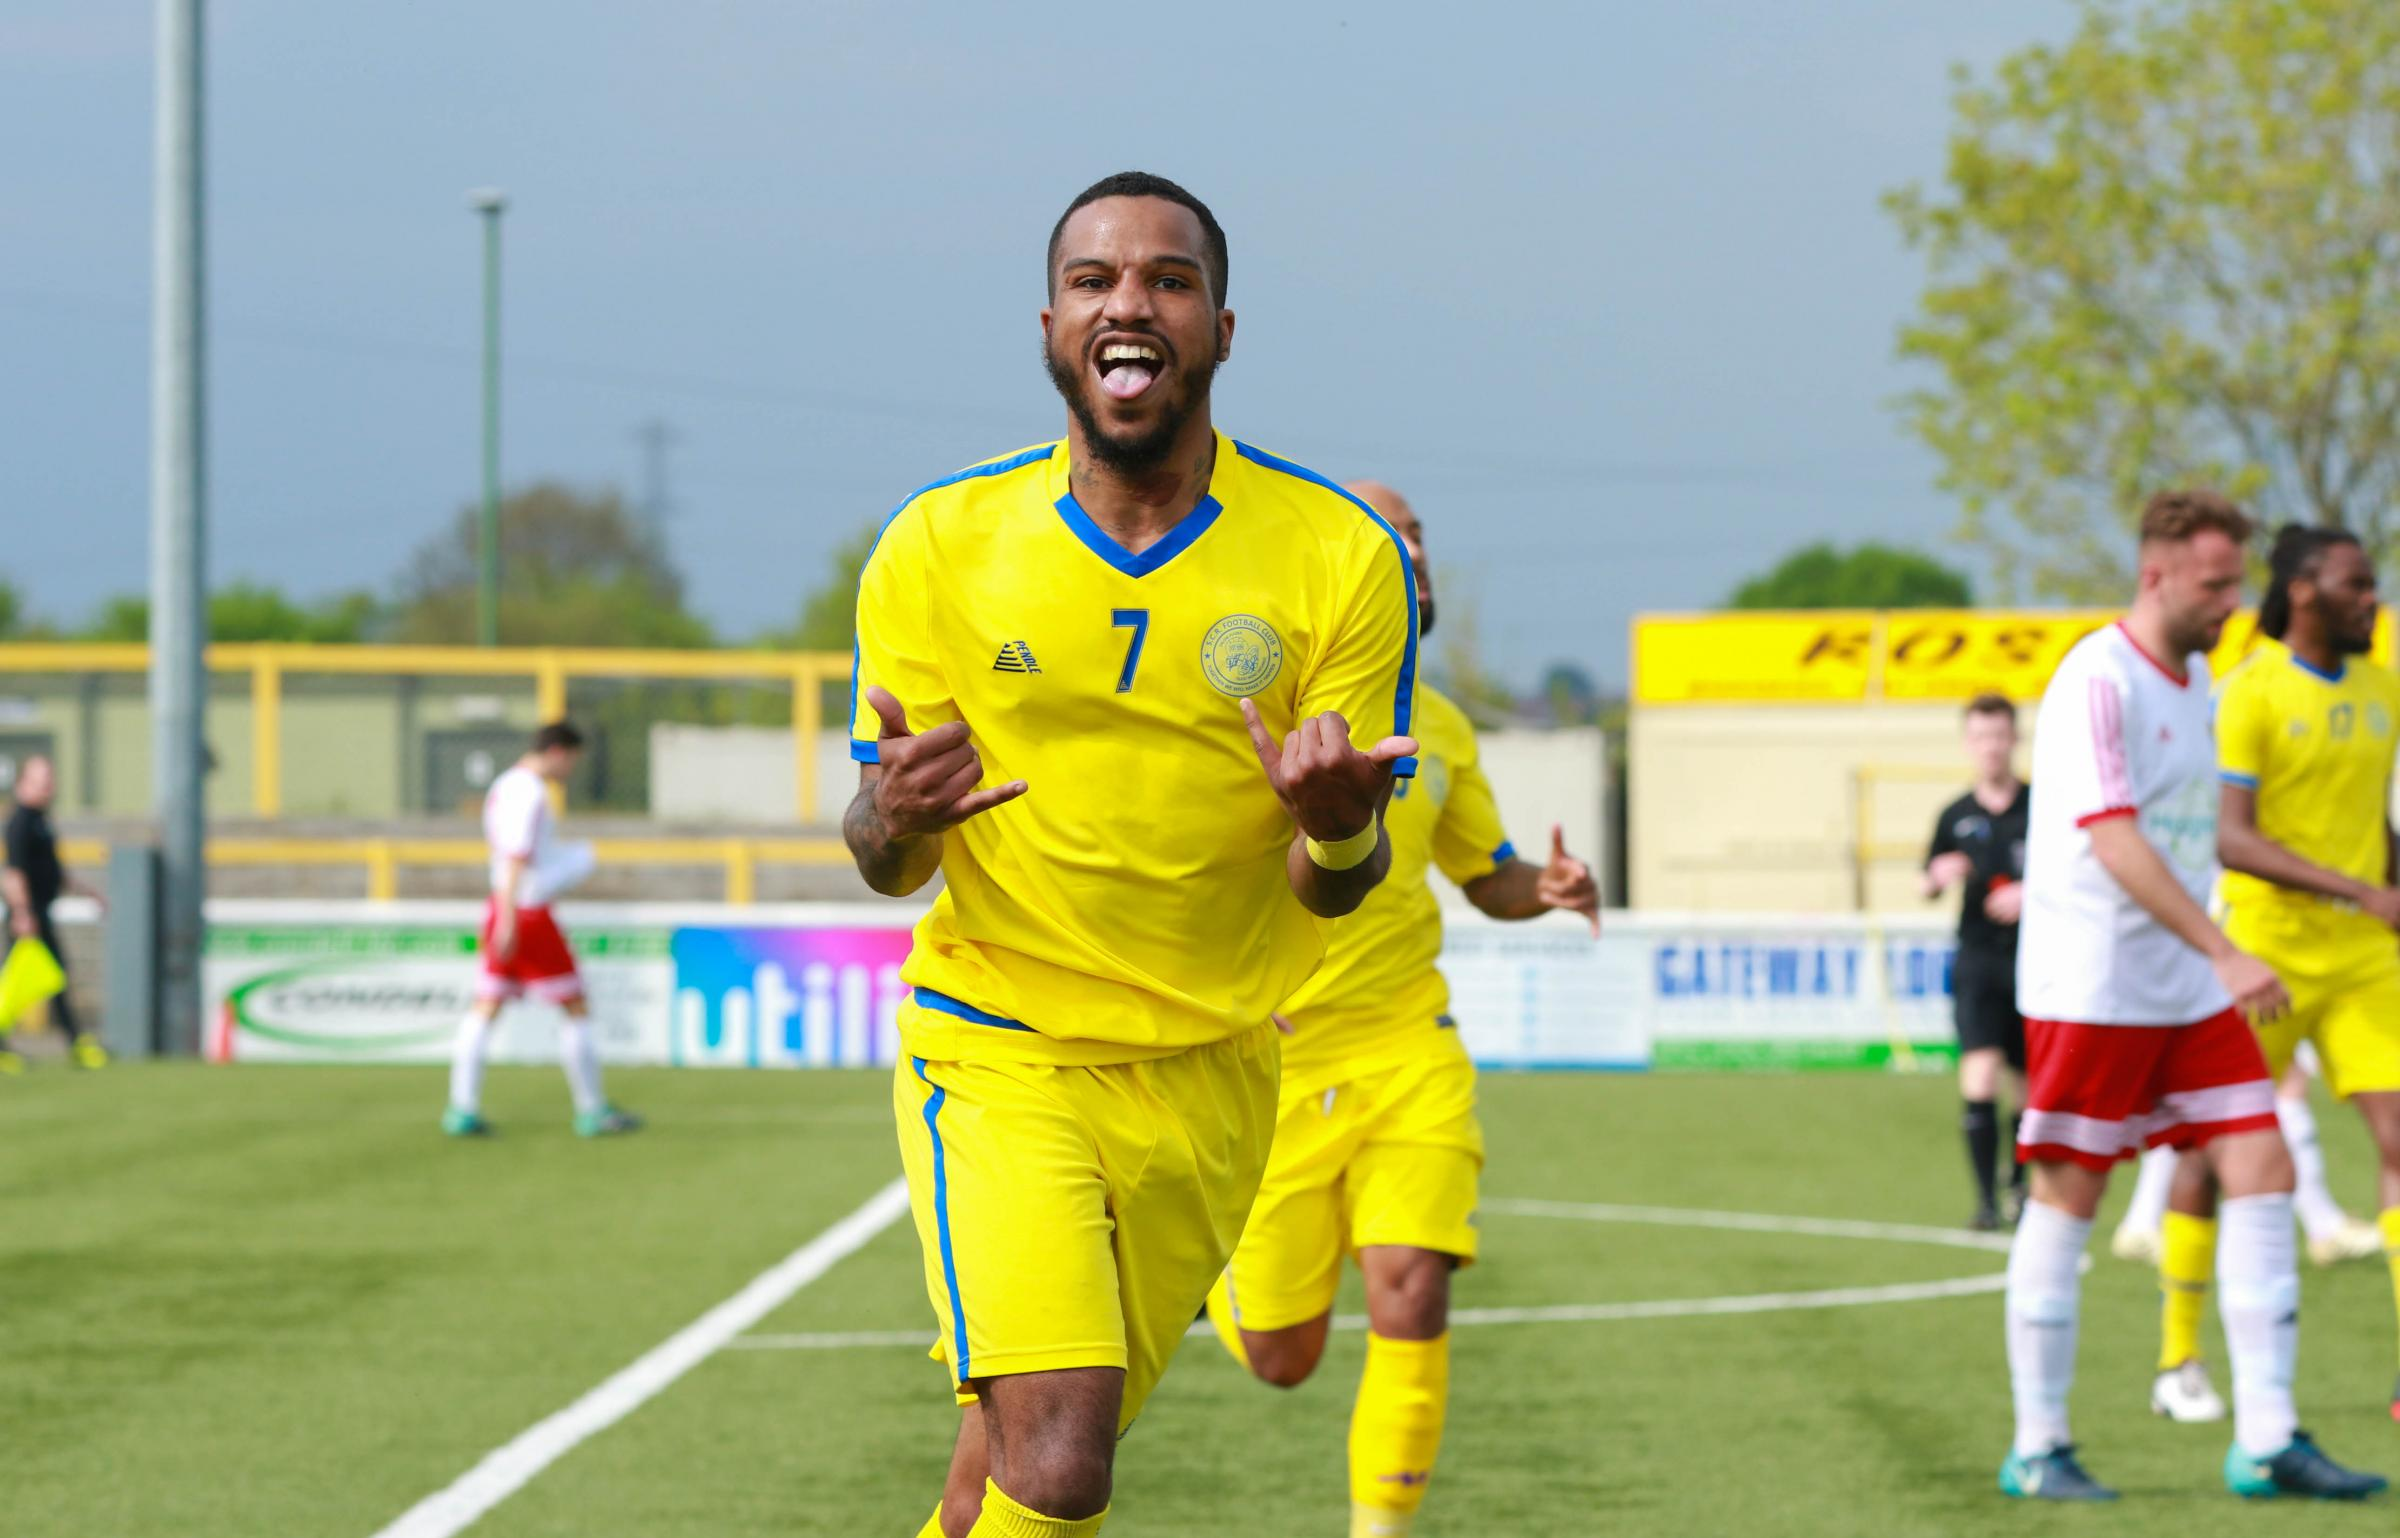 Michael Campbell celebrates his goal for Sutton Common Rovers